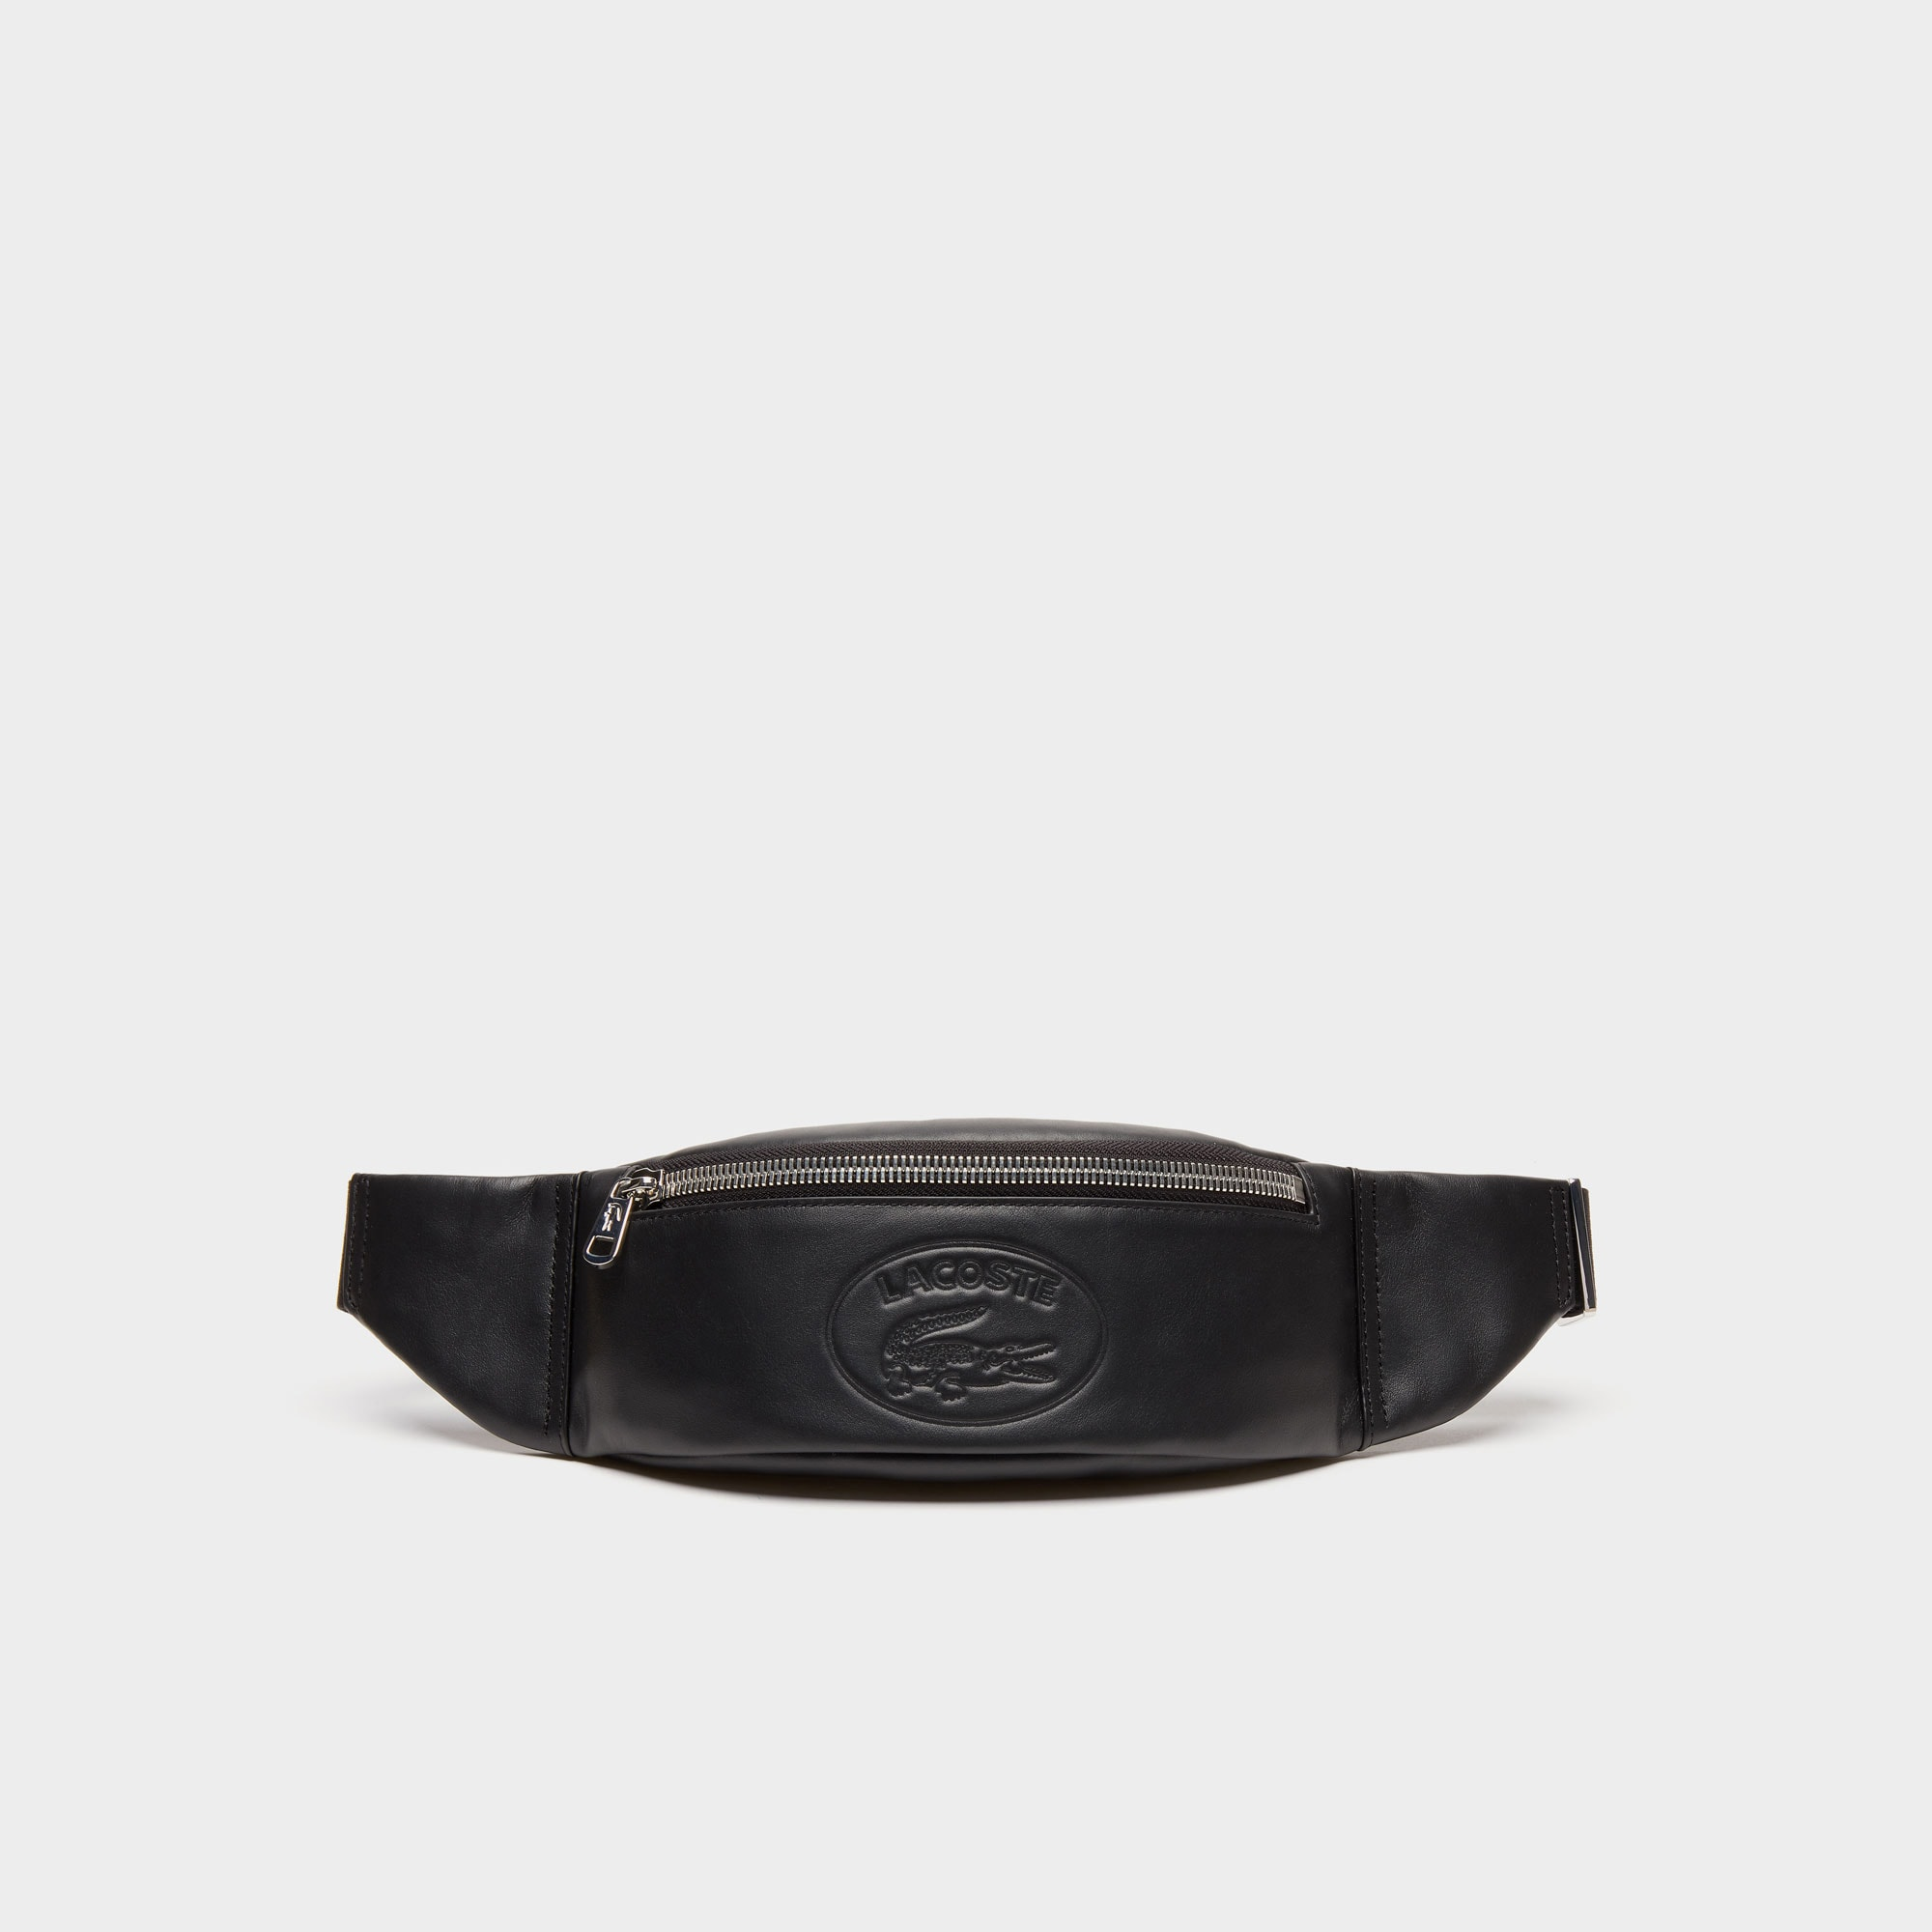 8ab9e4b509c6 Men s L.12.12 Casual Embossed Lettering Leather Zip Fanny Pack ...